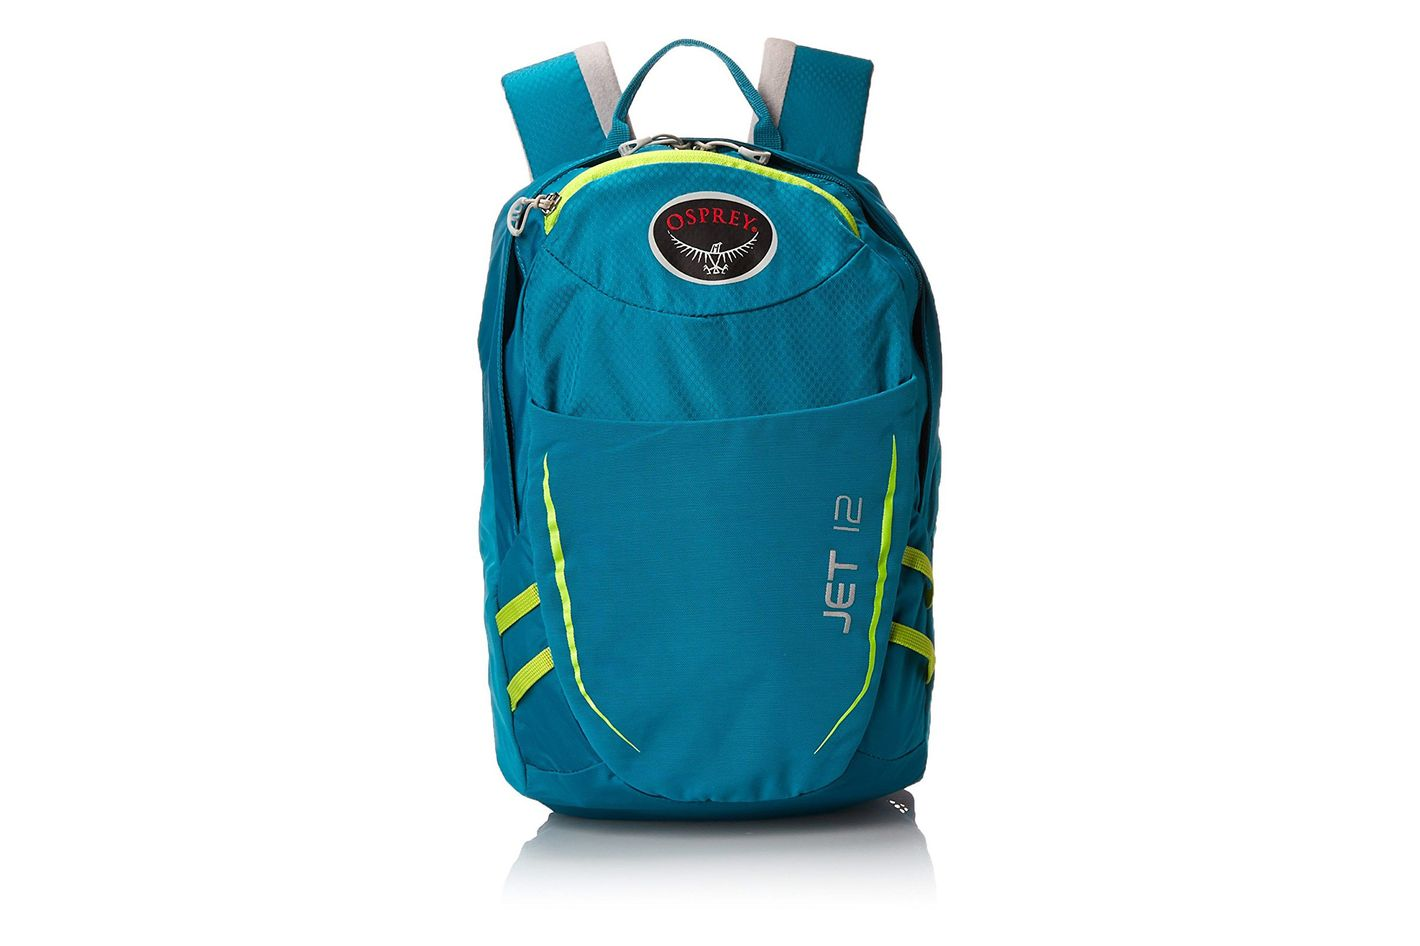 aeb186464a1e Best Backpacks for Students and Back Pain 2017